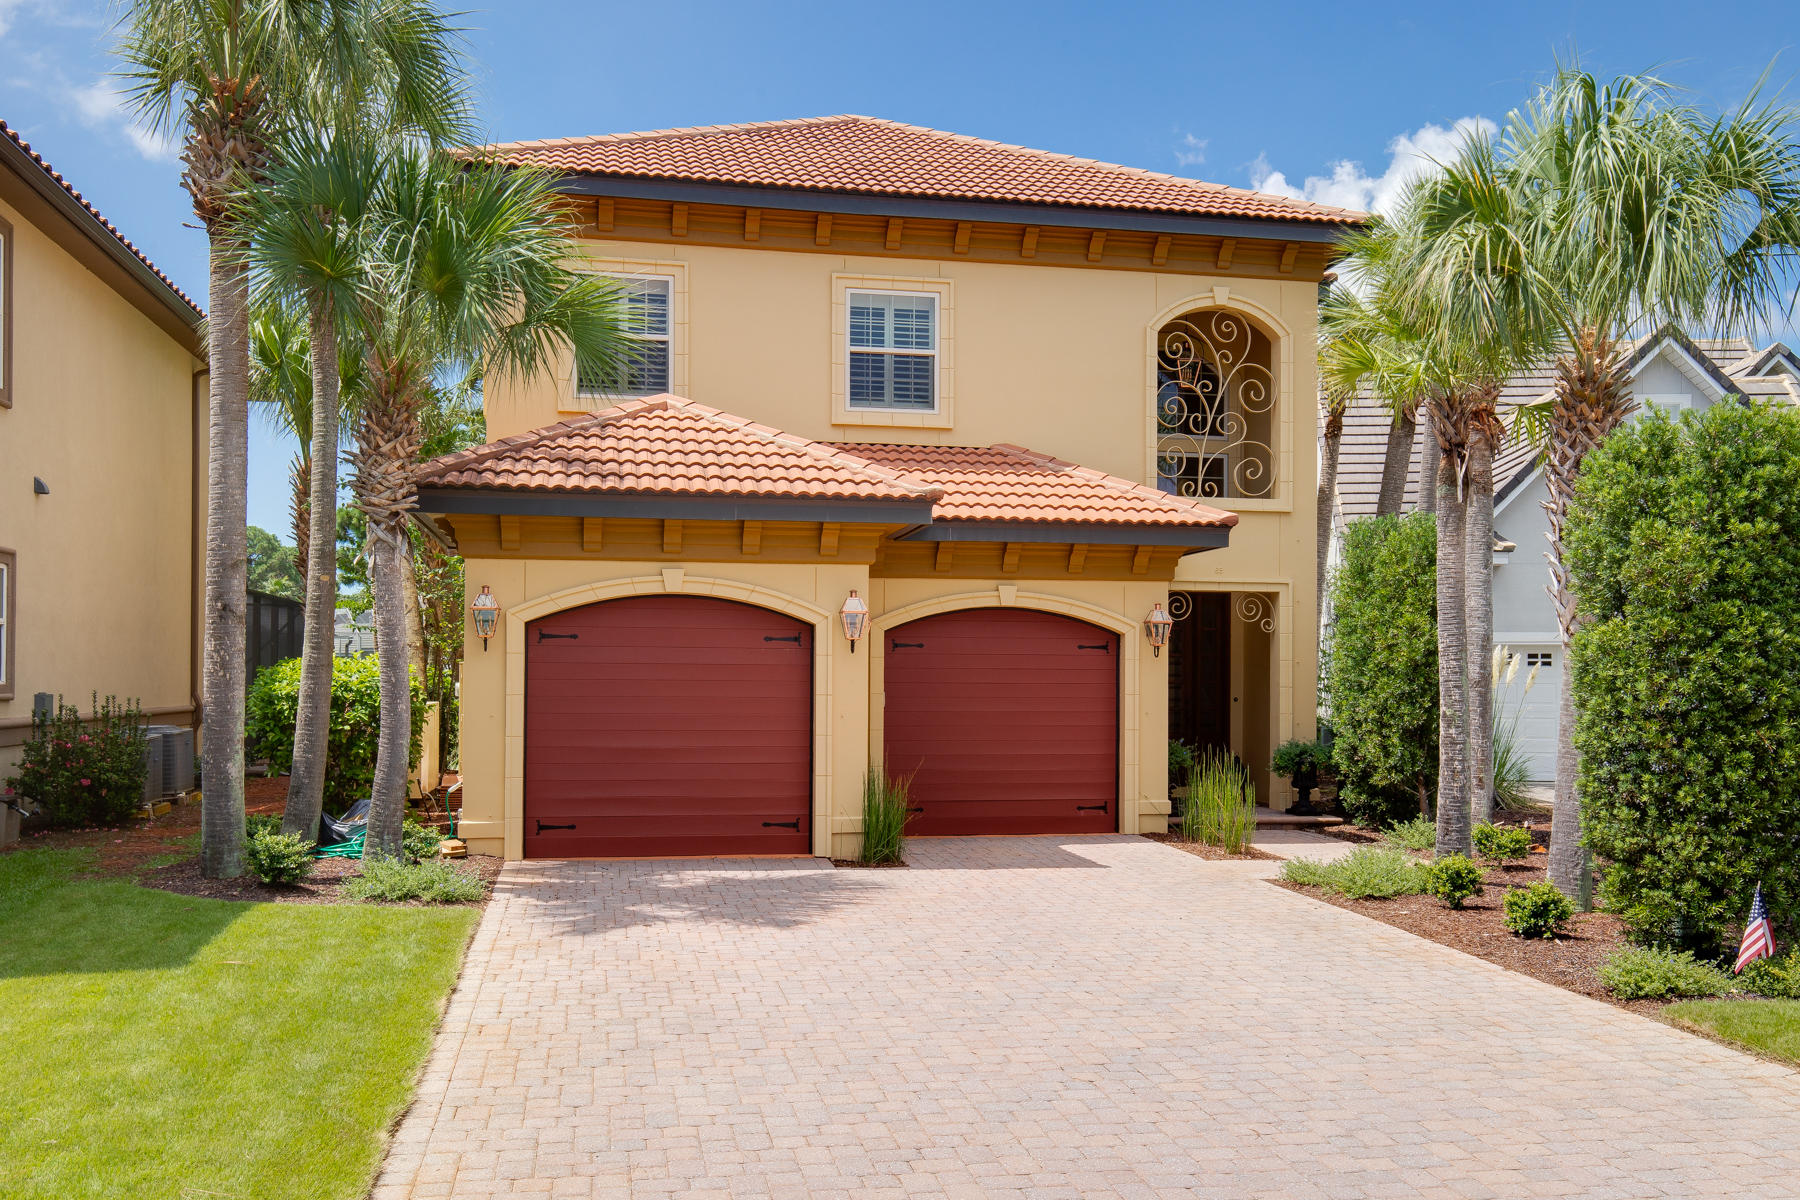 Photo of home for sale at 69 Cobalt, Miramar Beach FL